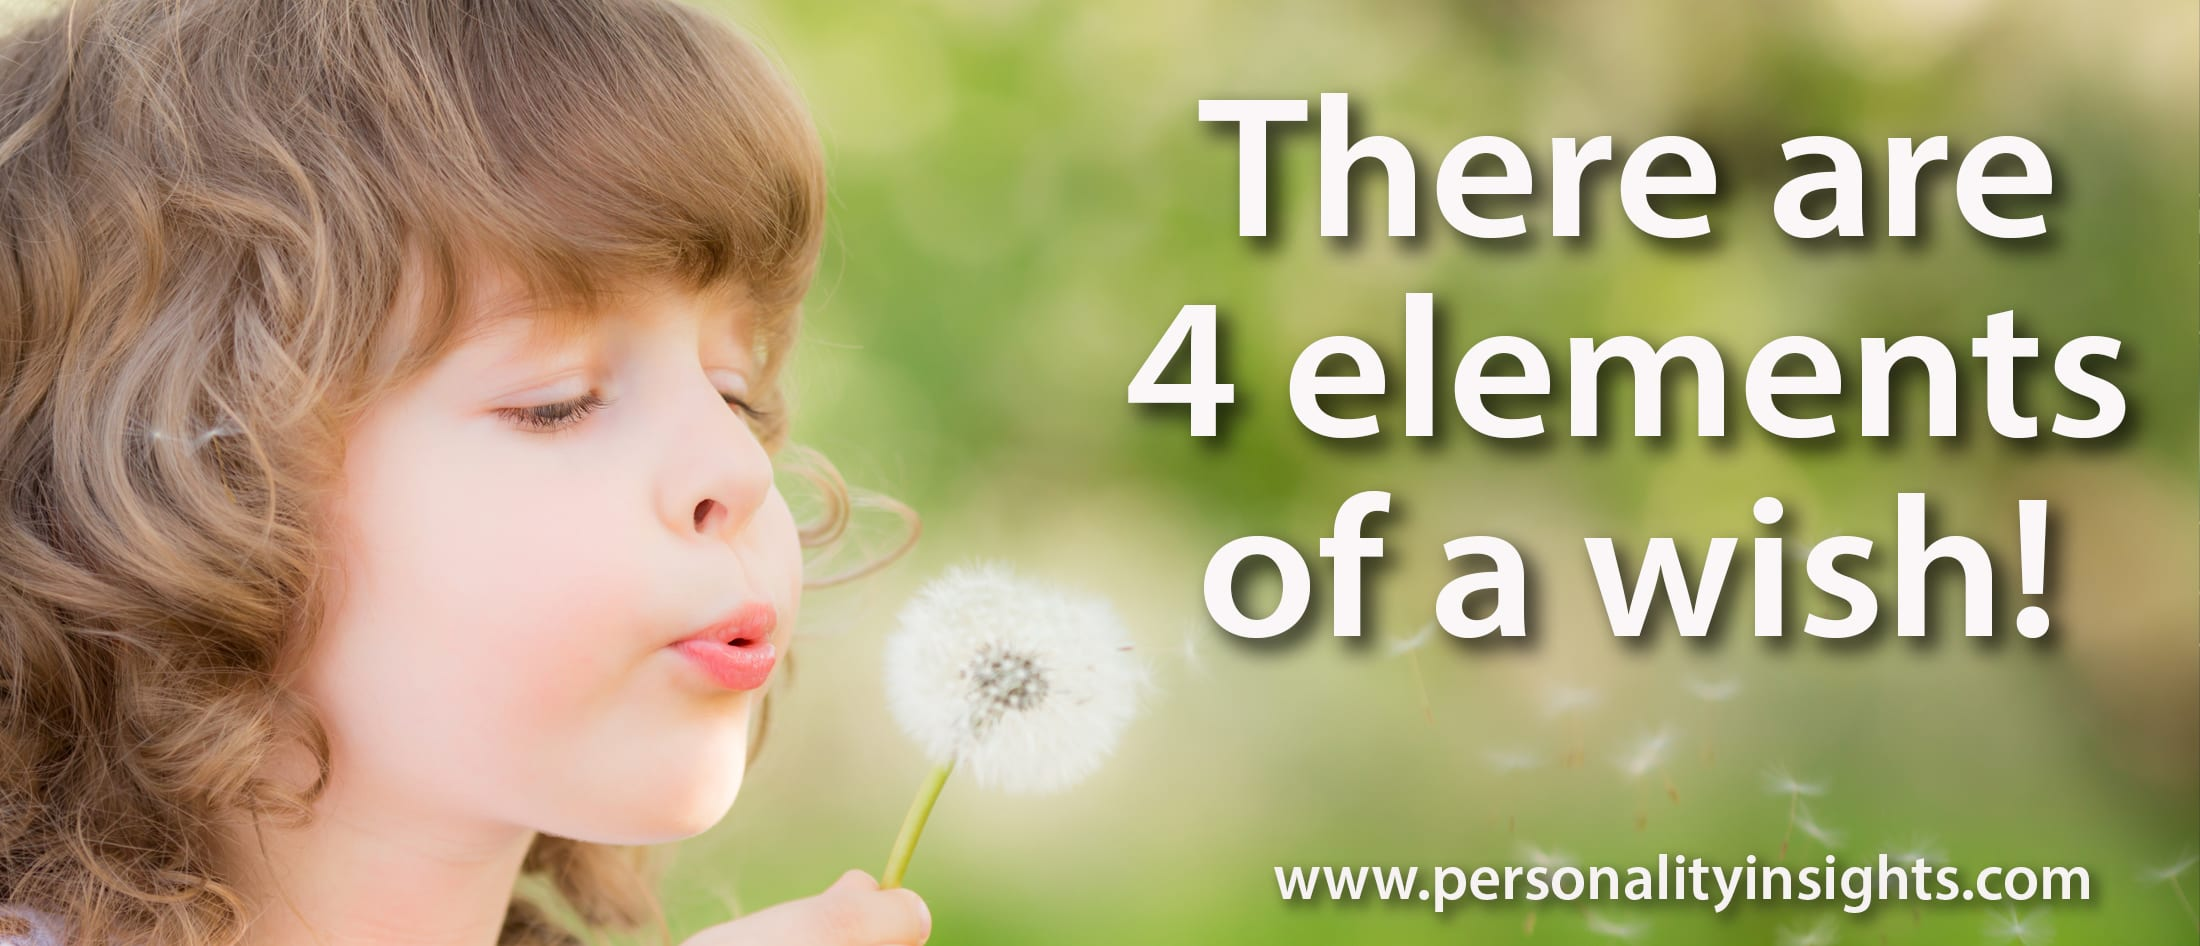 Tip: There are 4 elements of a wish!